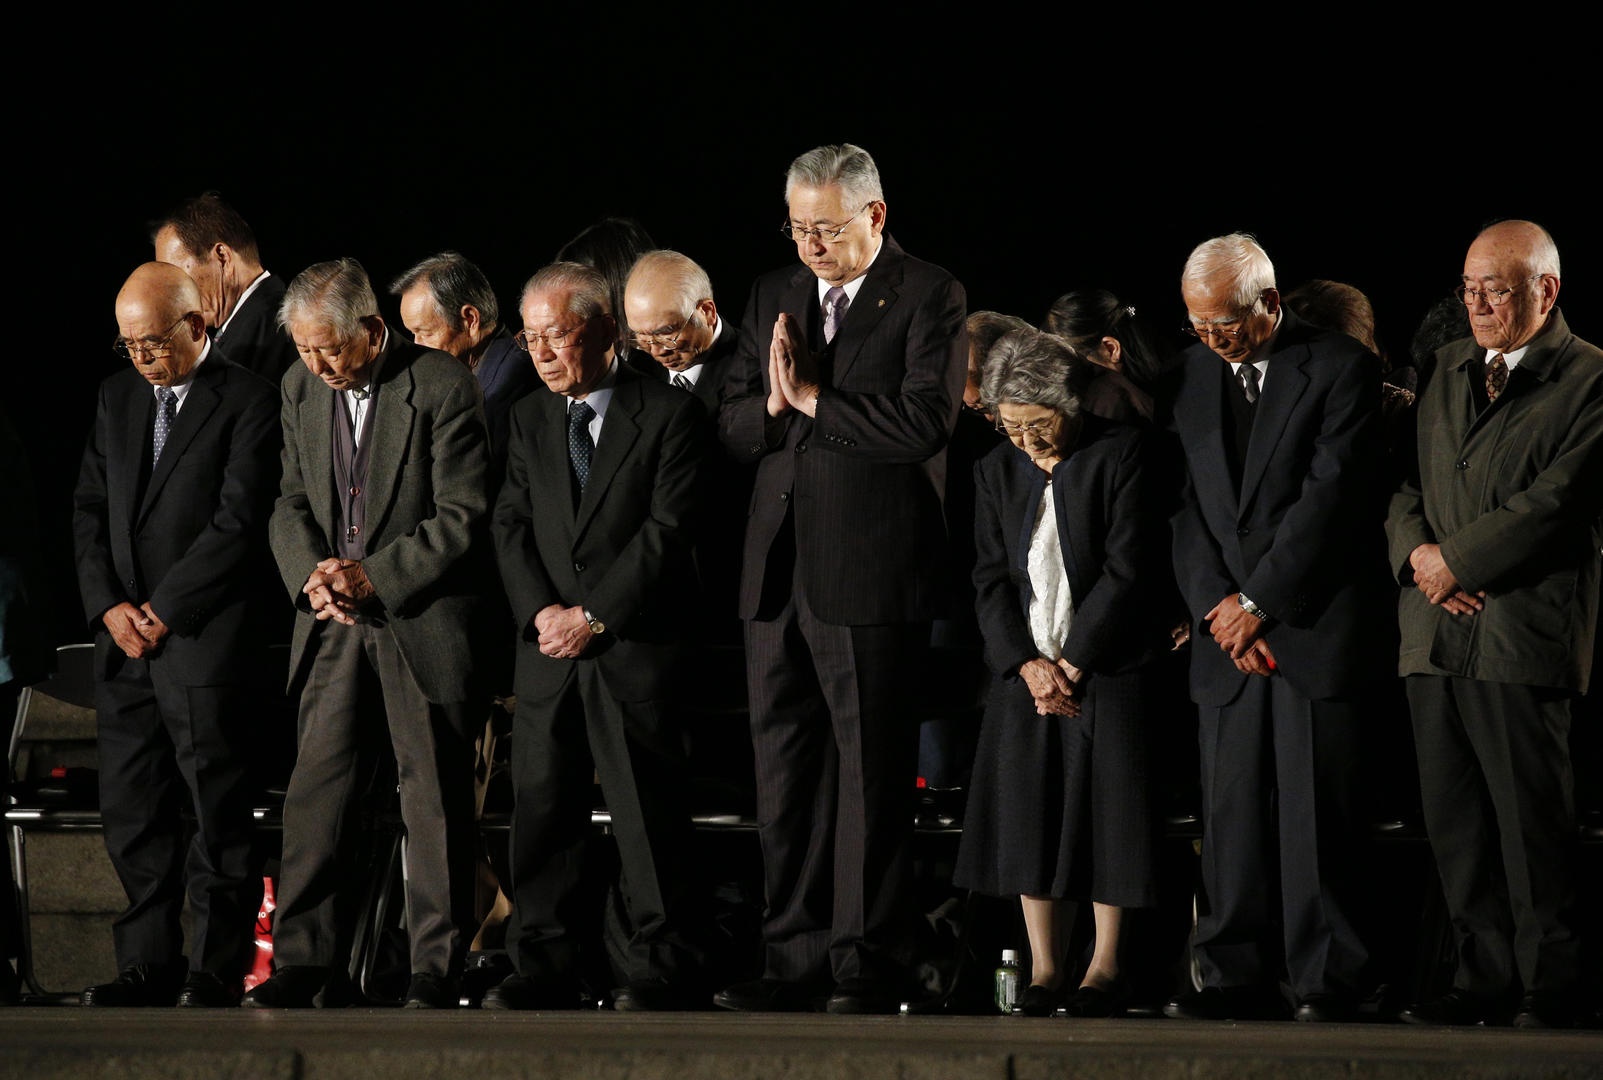 Victims of the 1945 atomic bombing observe a moment of silence during a meeting for peace led by Pope Francis at the Hiroshima Peace Memorial in Hiroshima, Japan, Nov. 24, 2019.